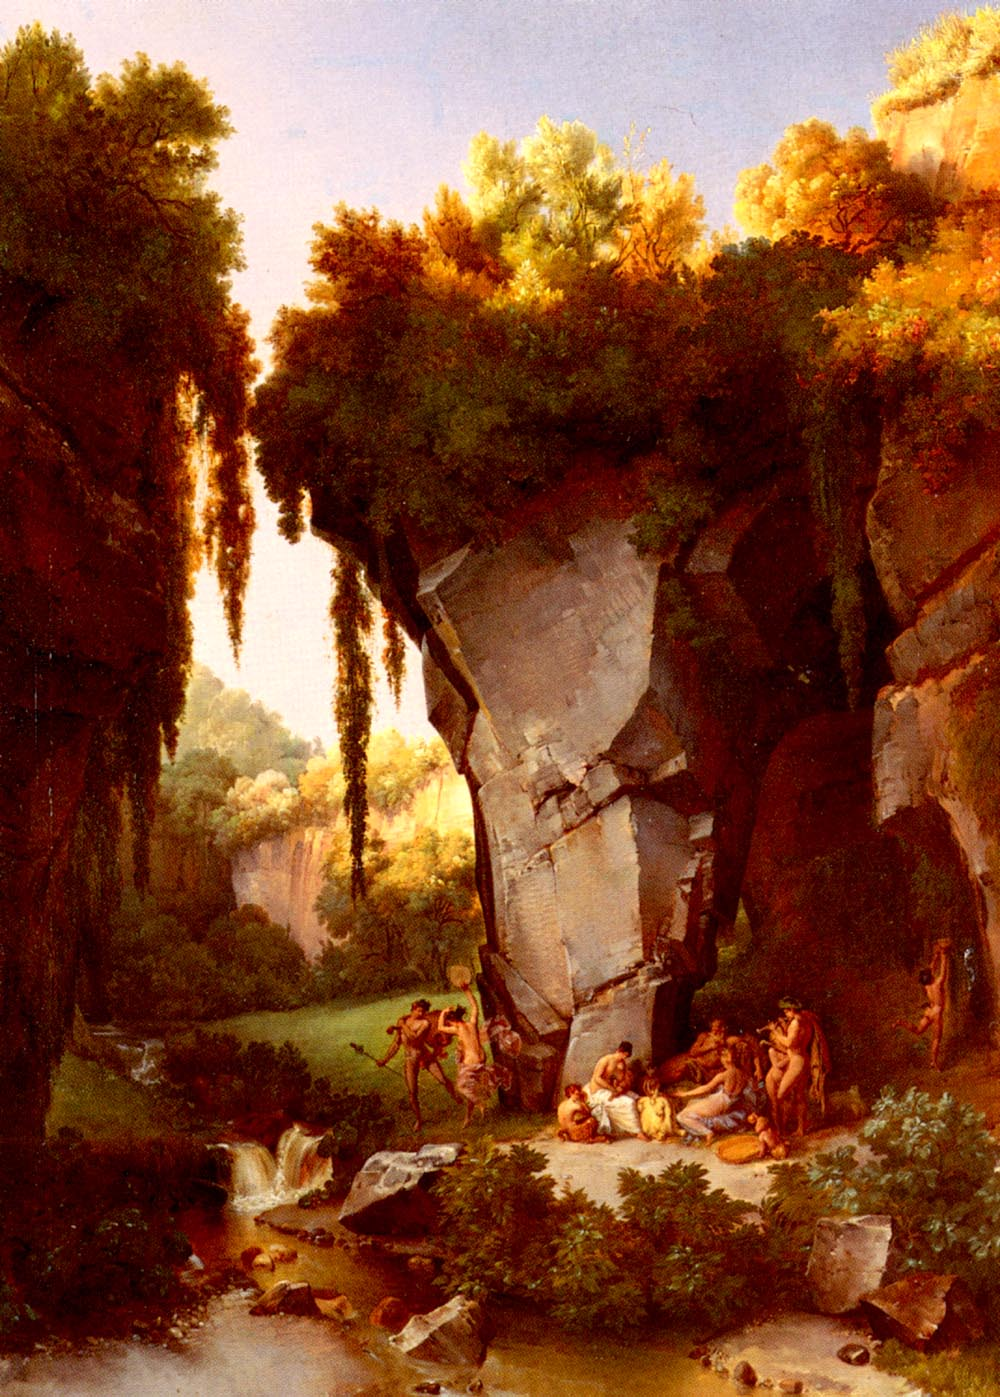 Craggy Landscrape With Bacchanal by Lancelot Theodore Turpin